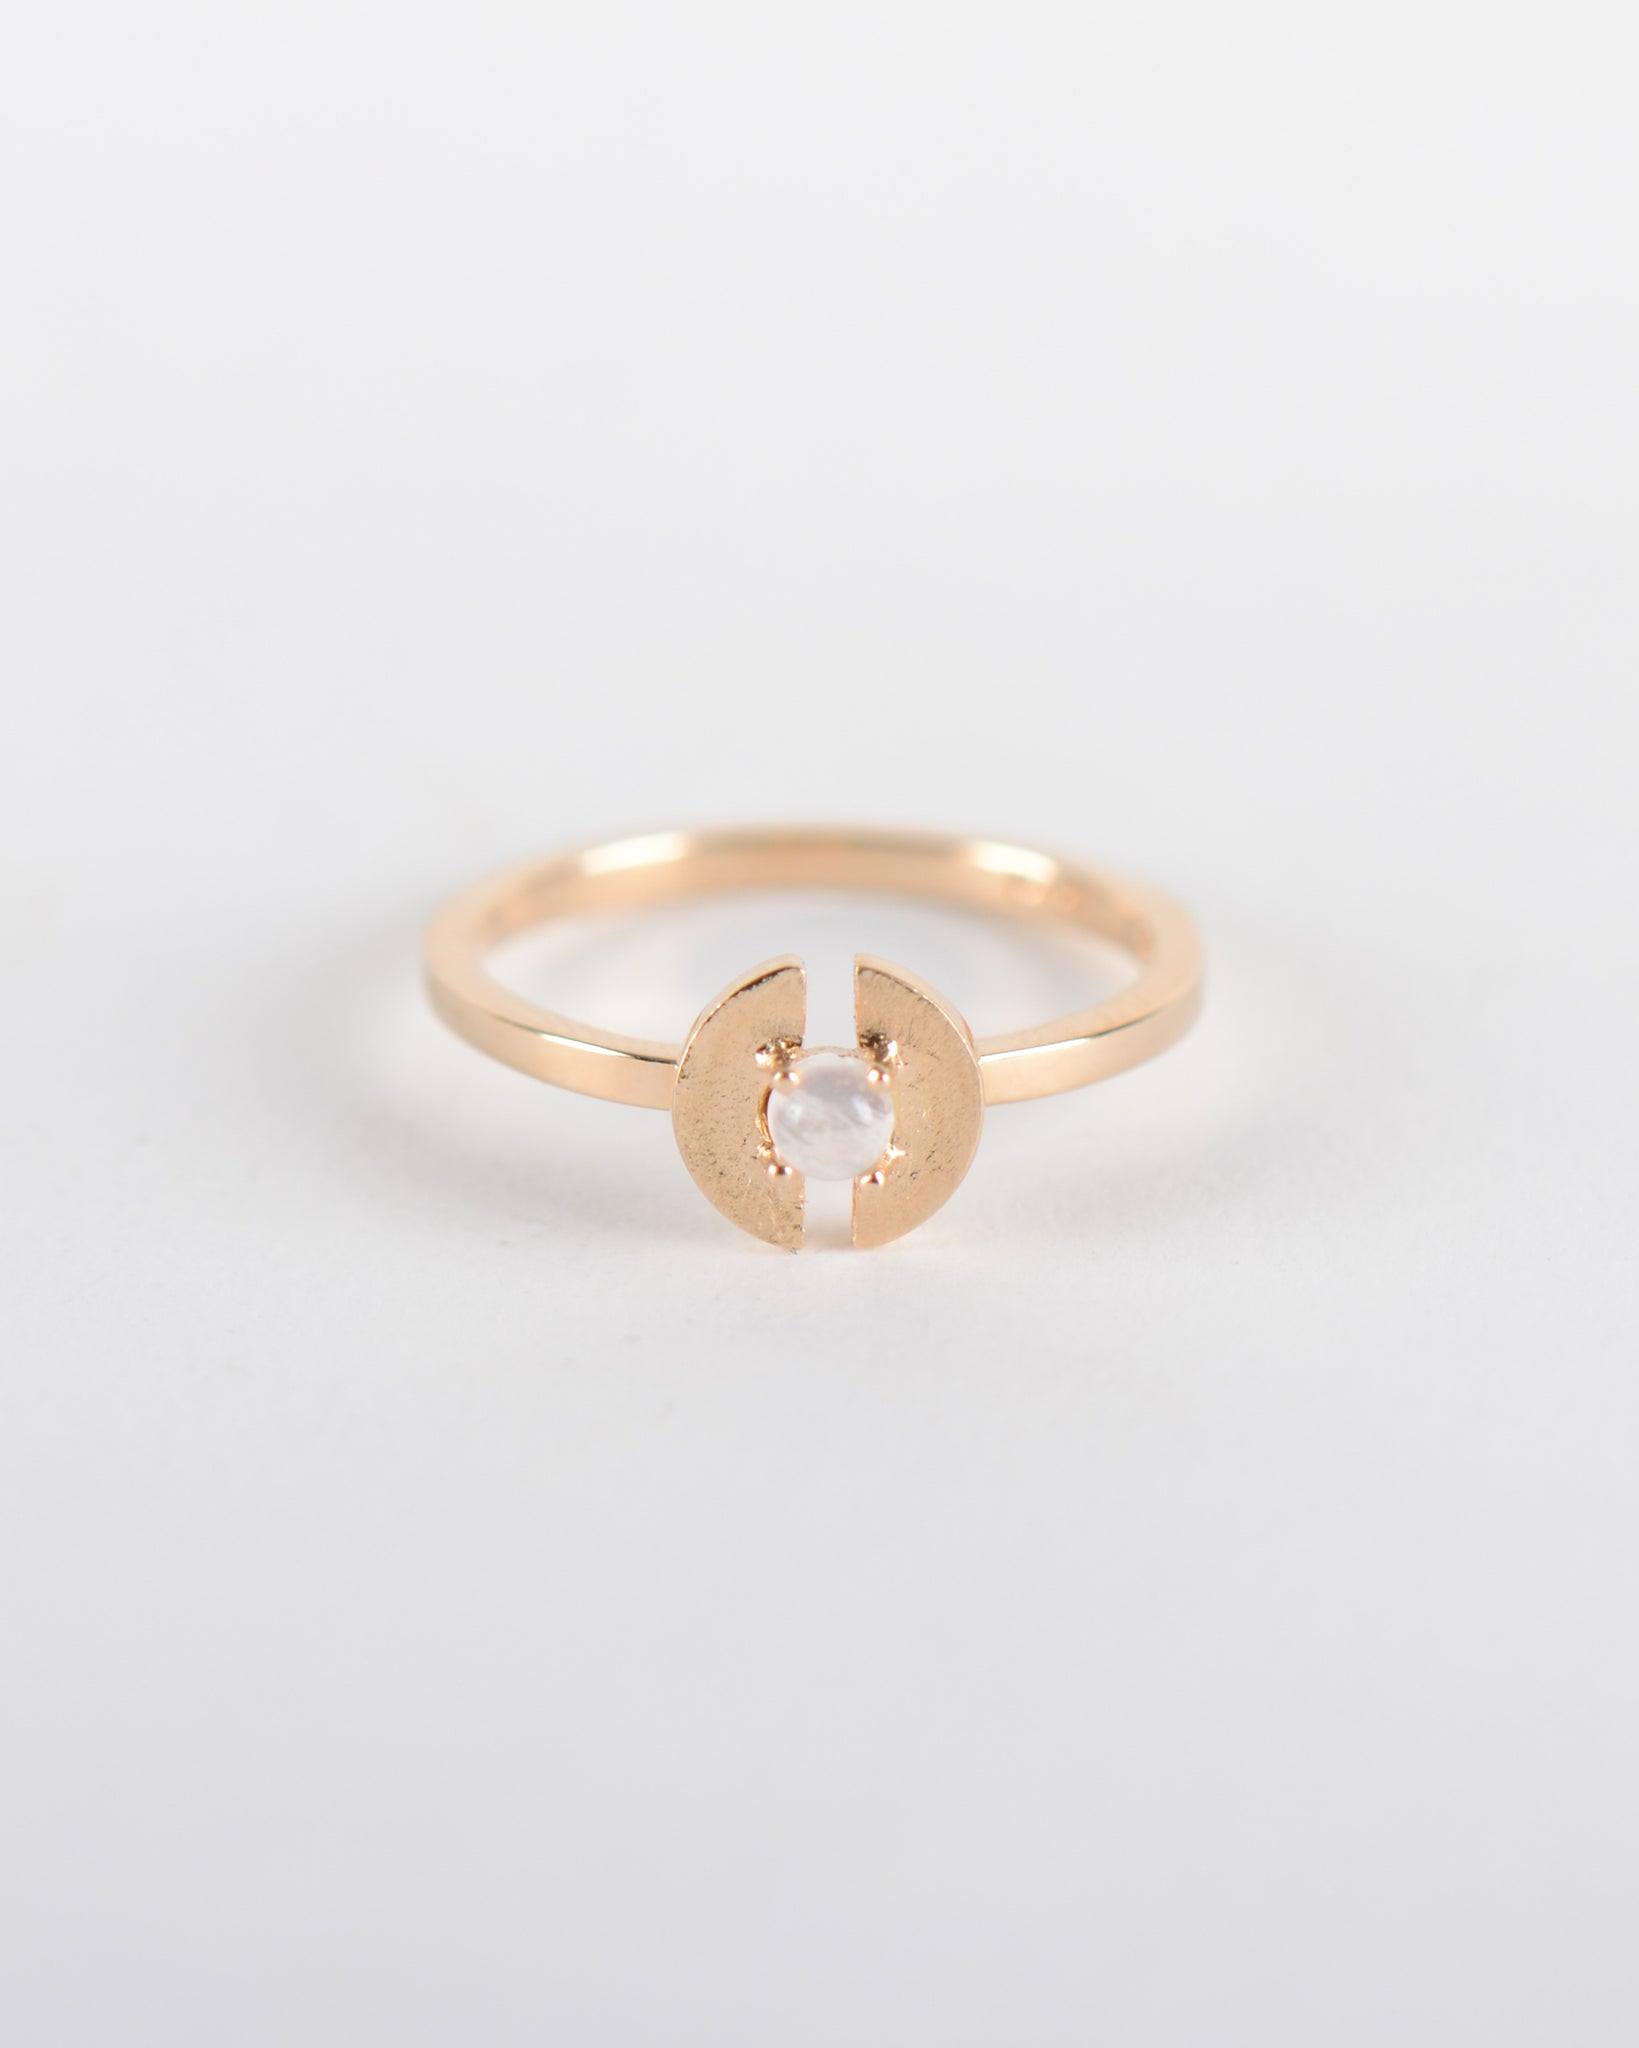 Stein Ring in Yellow Gold with a Moonstone